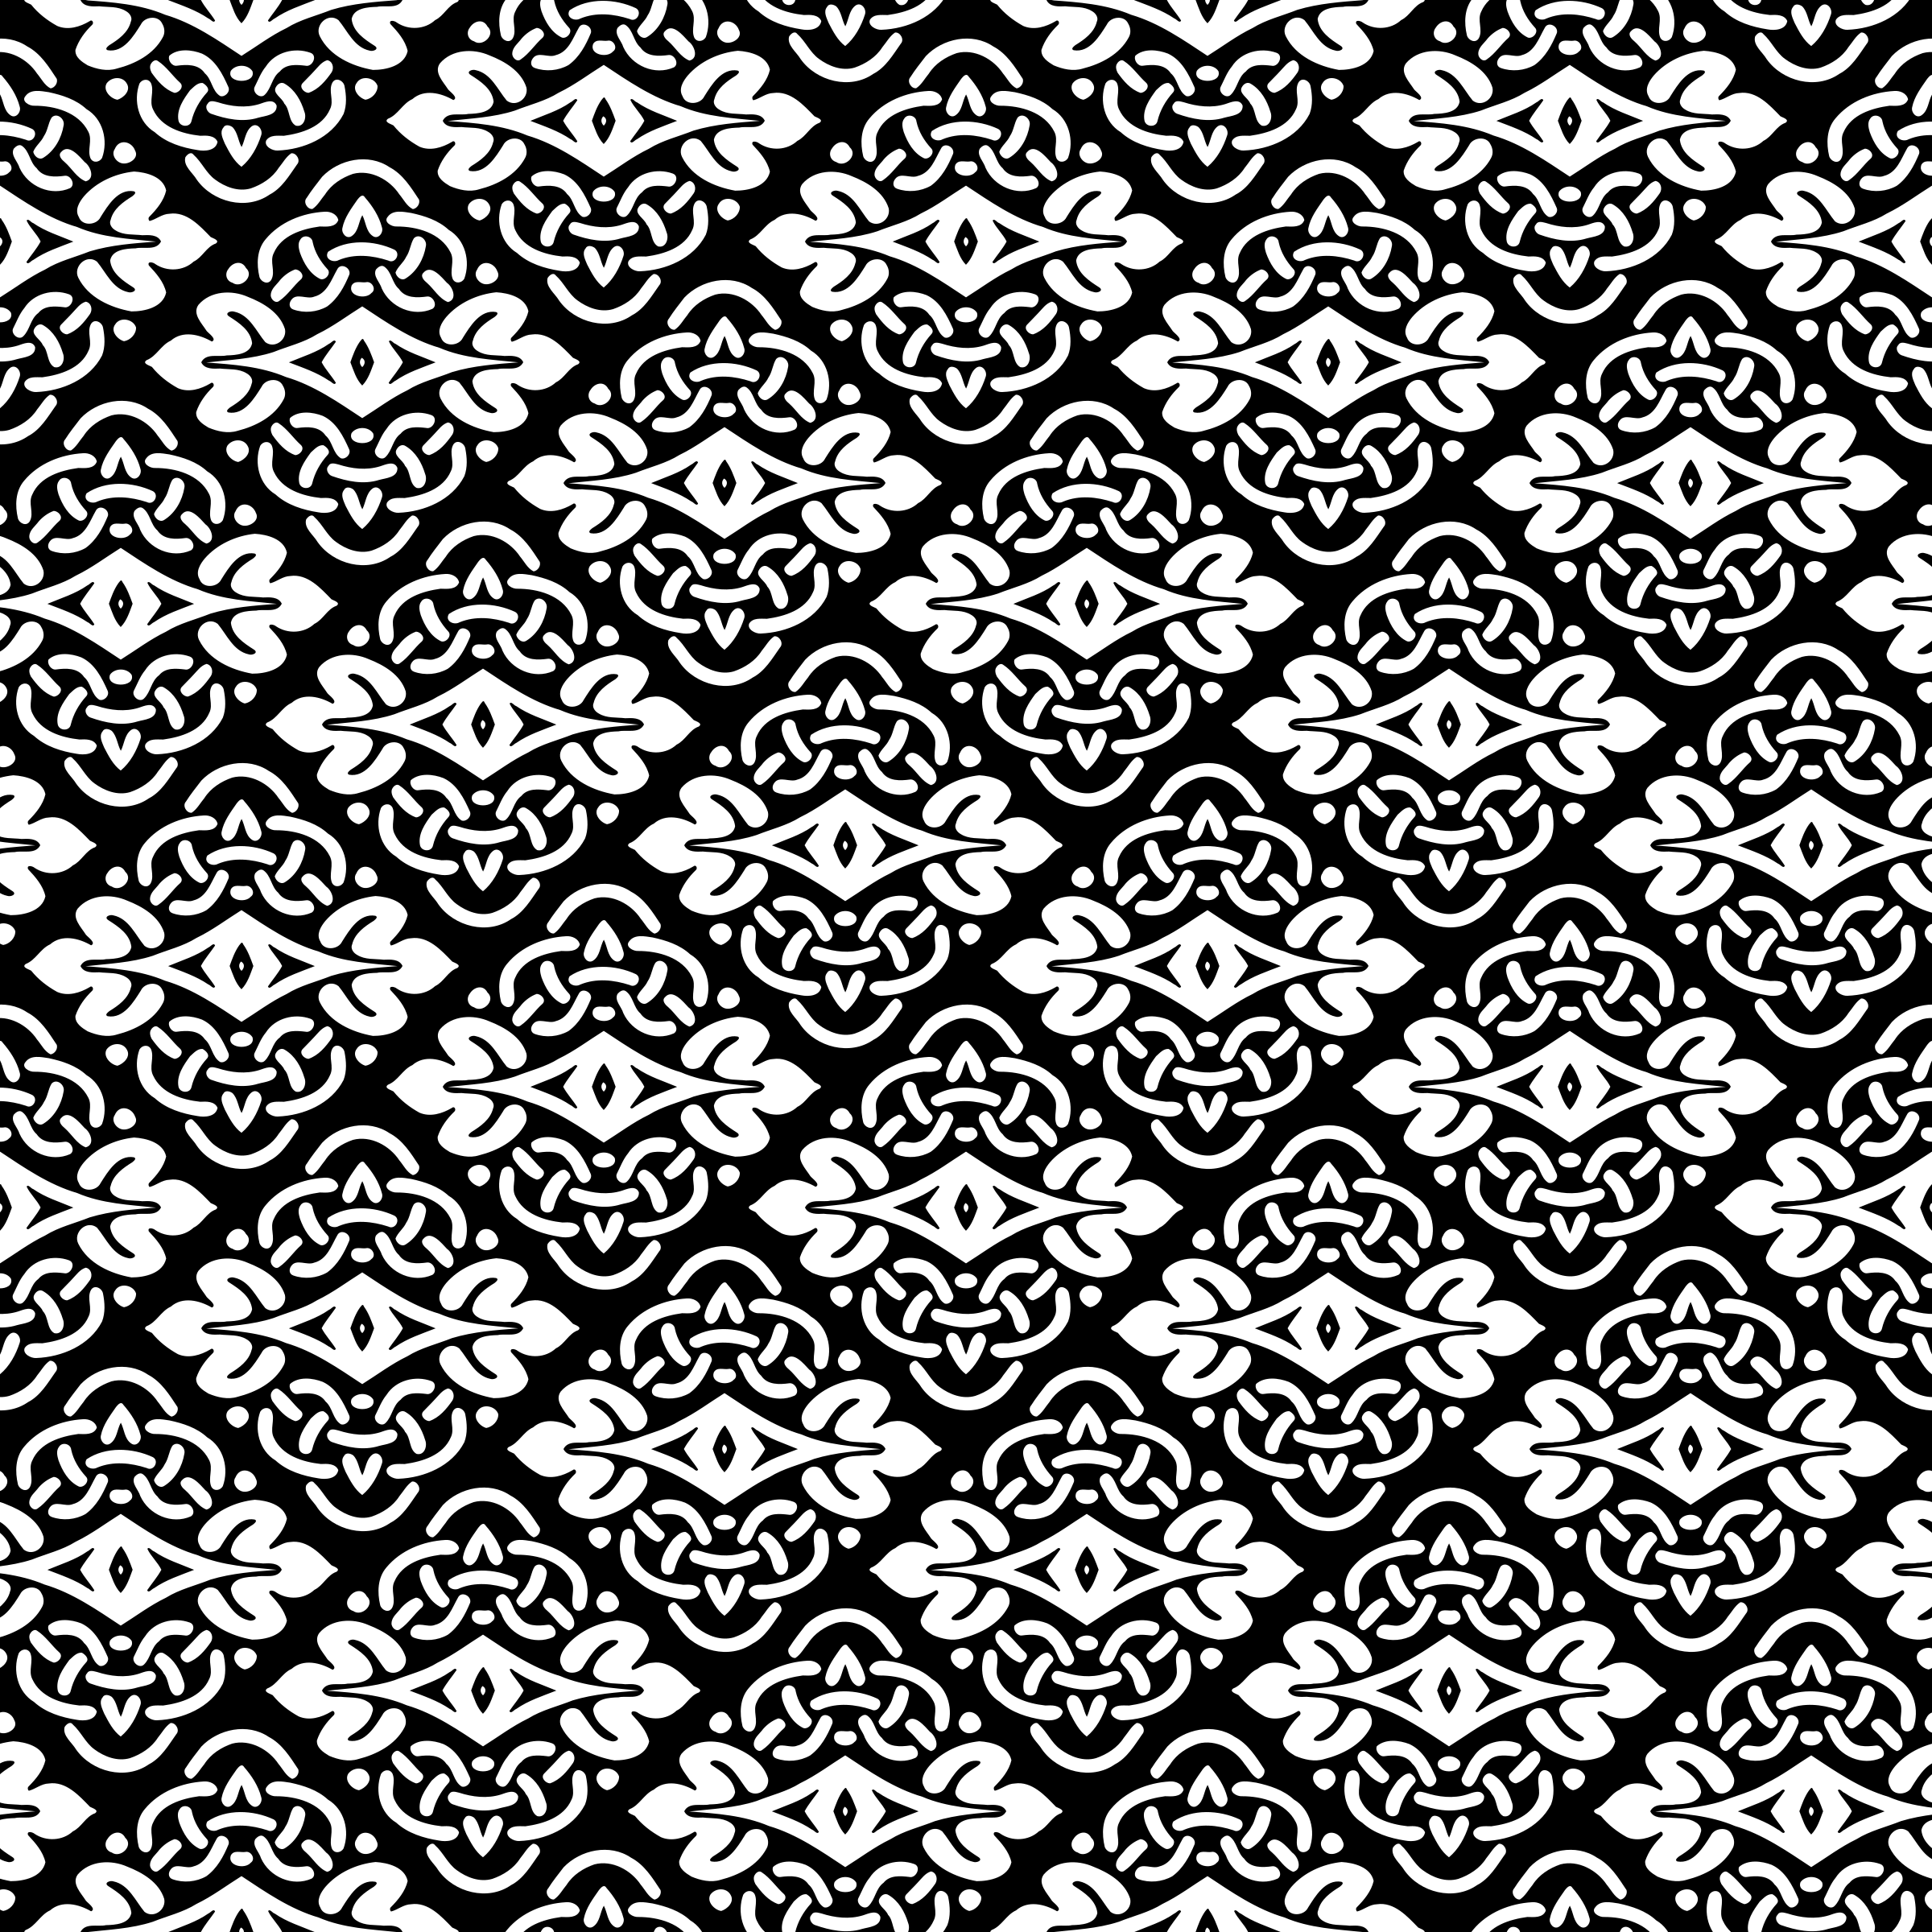 Background pattern 173 by Firkin